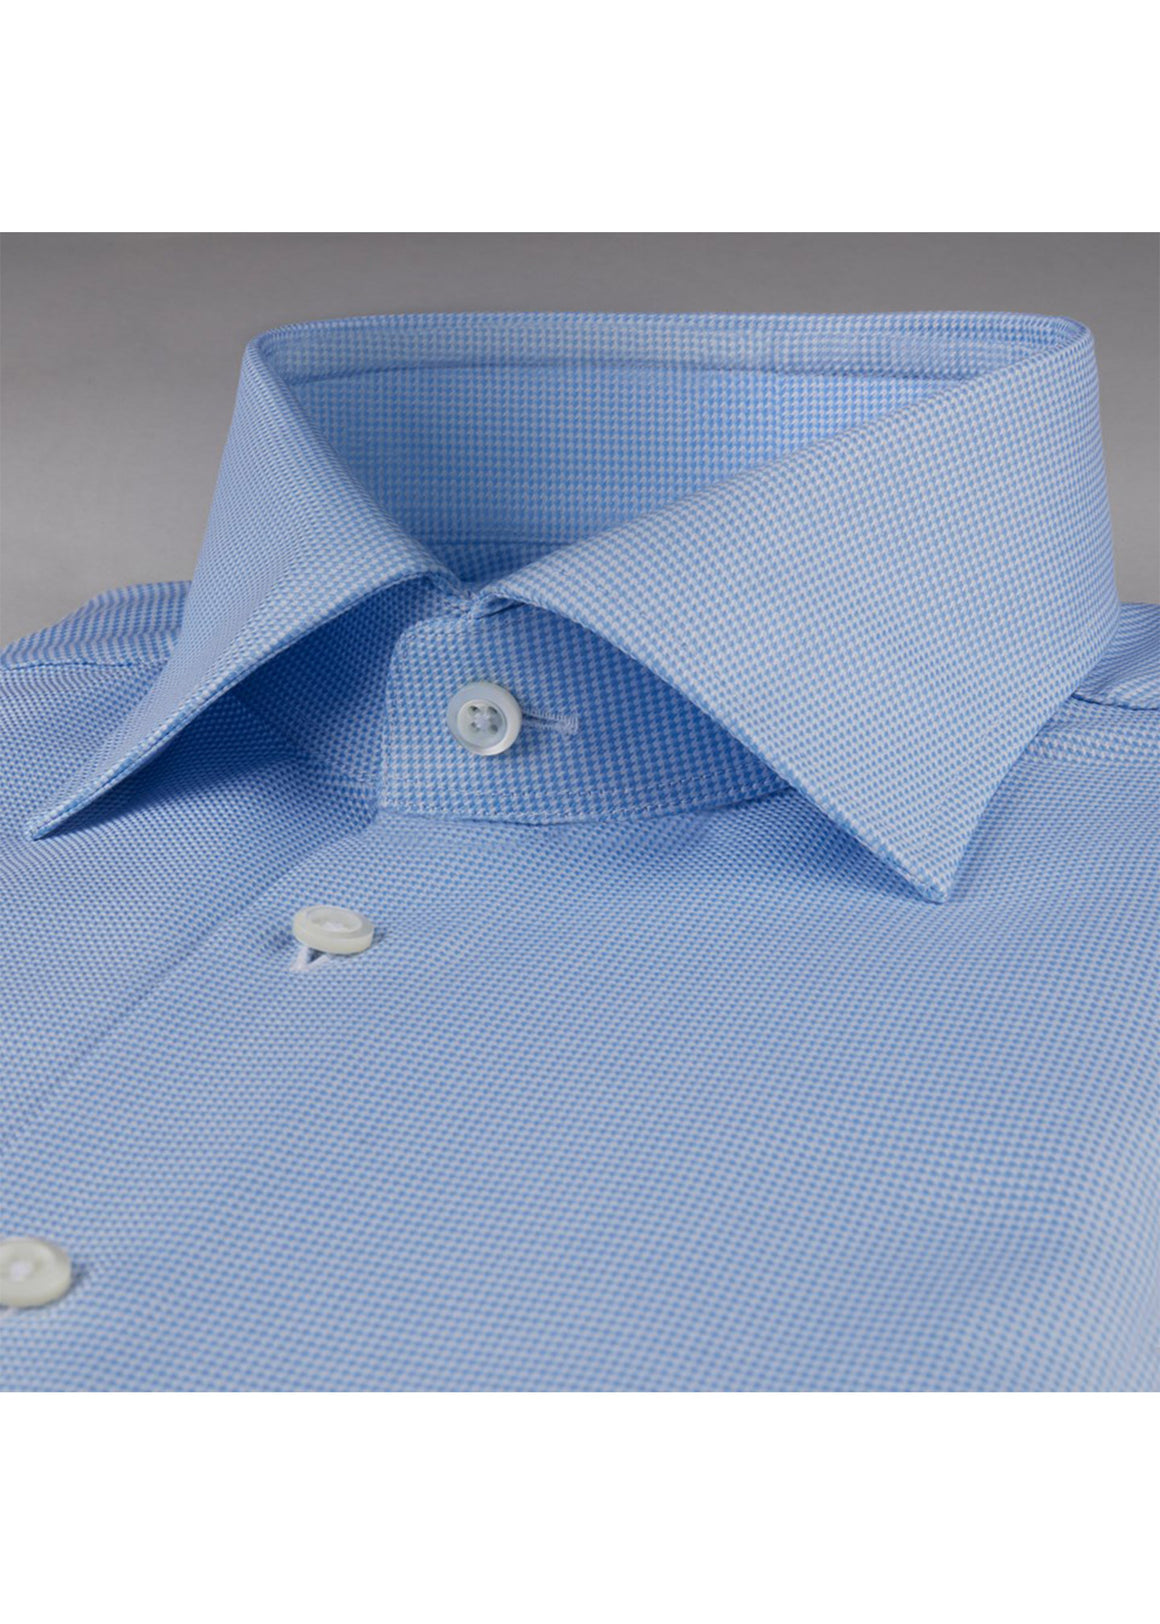 Blue Houndstooth Fitted Body Shirt